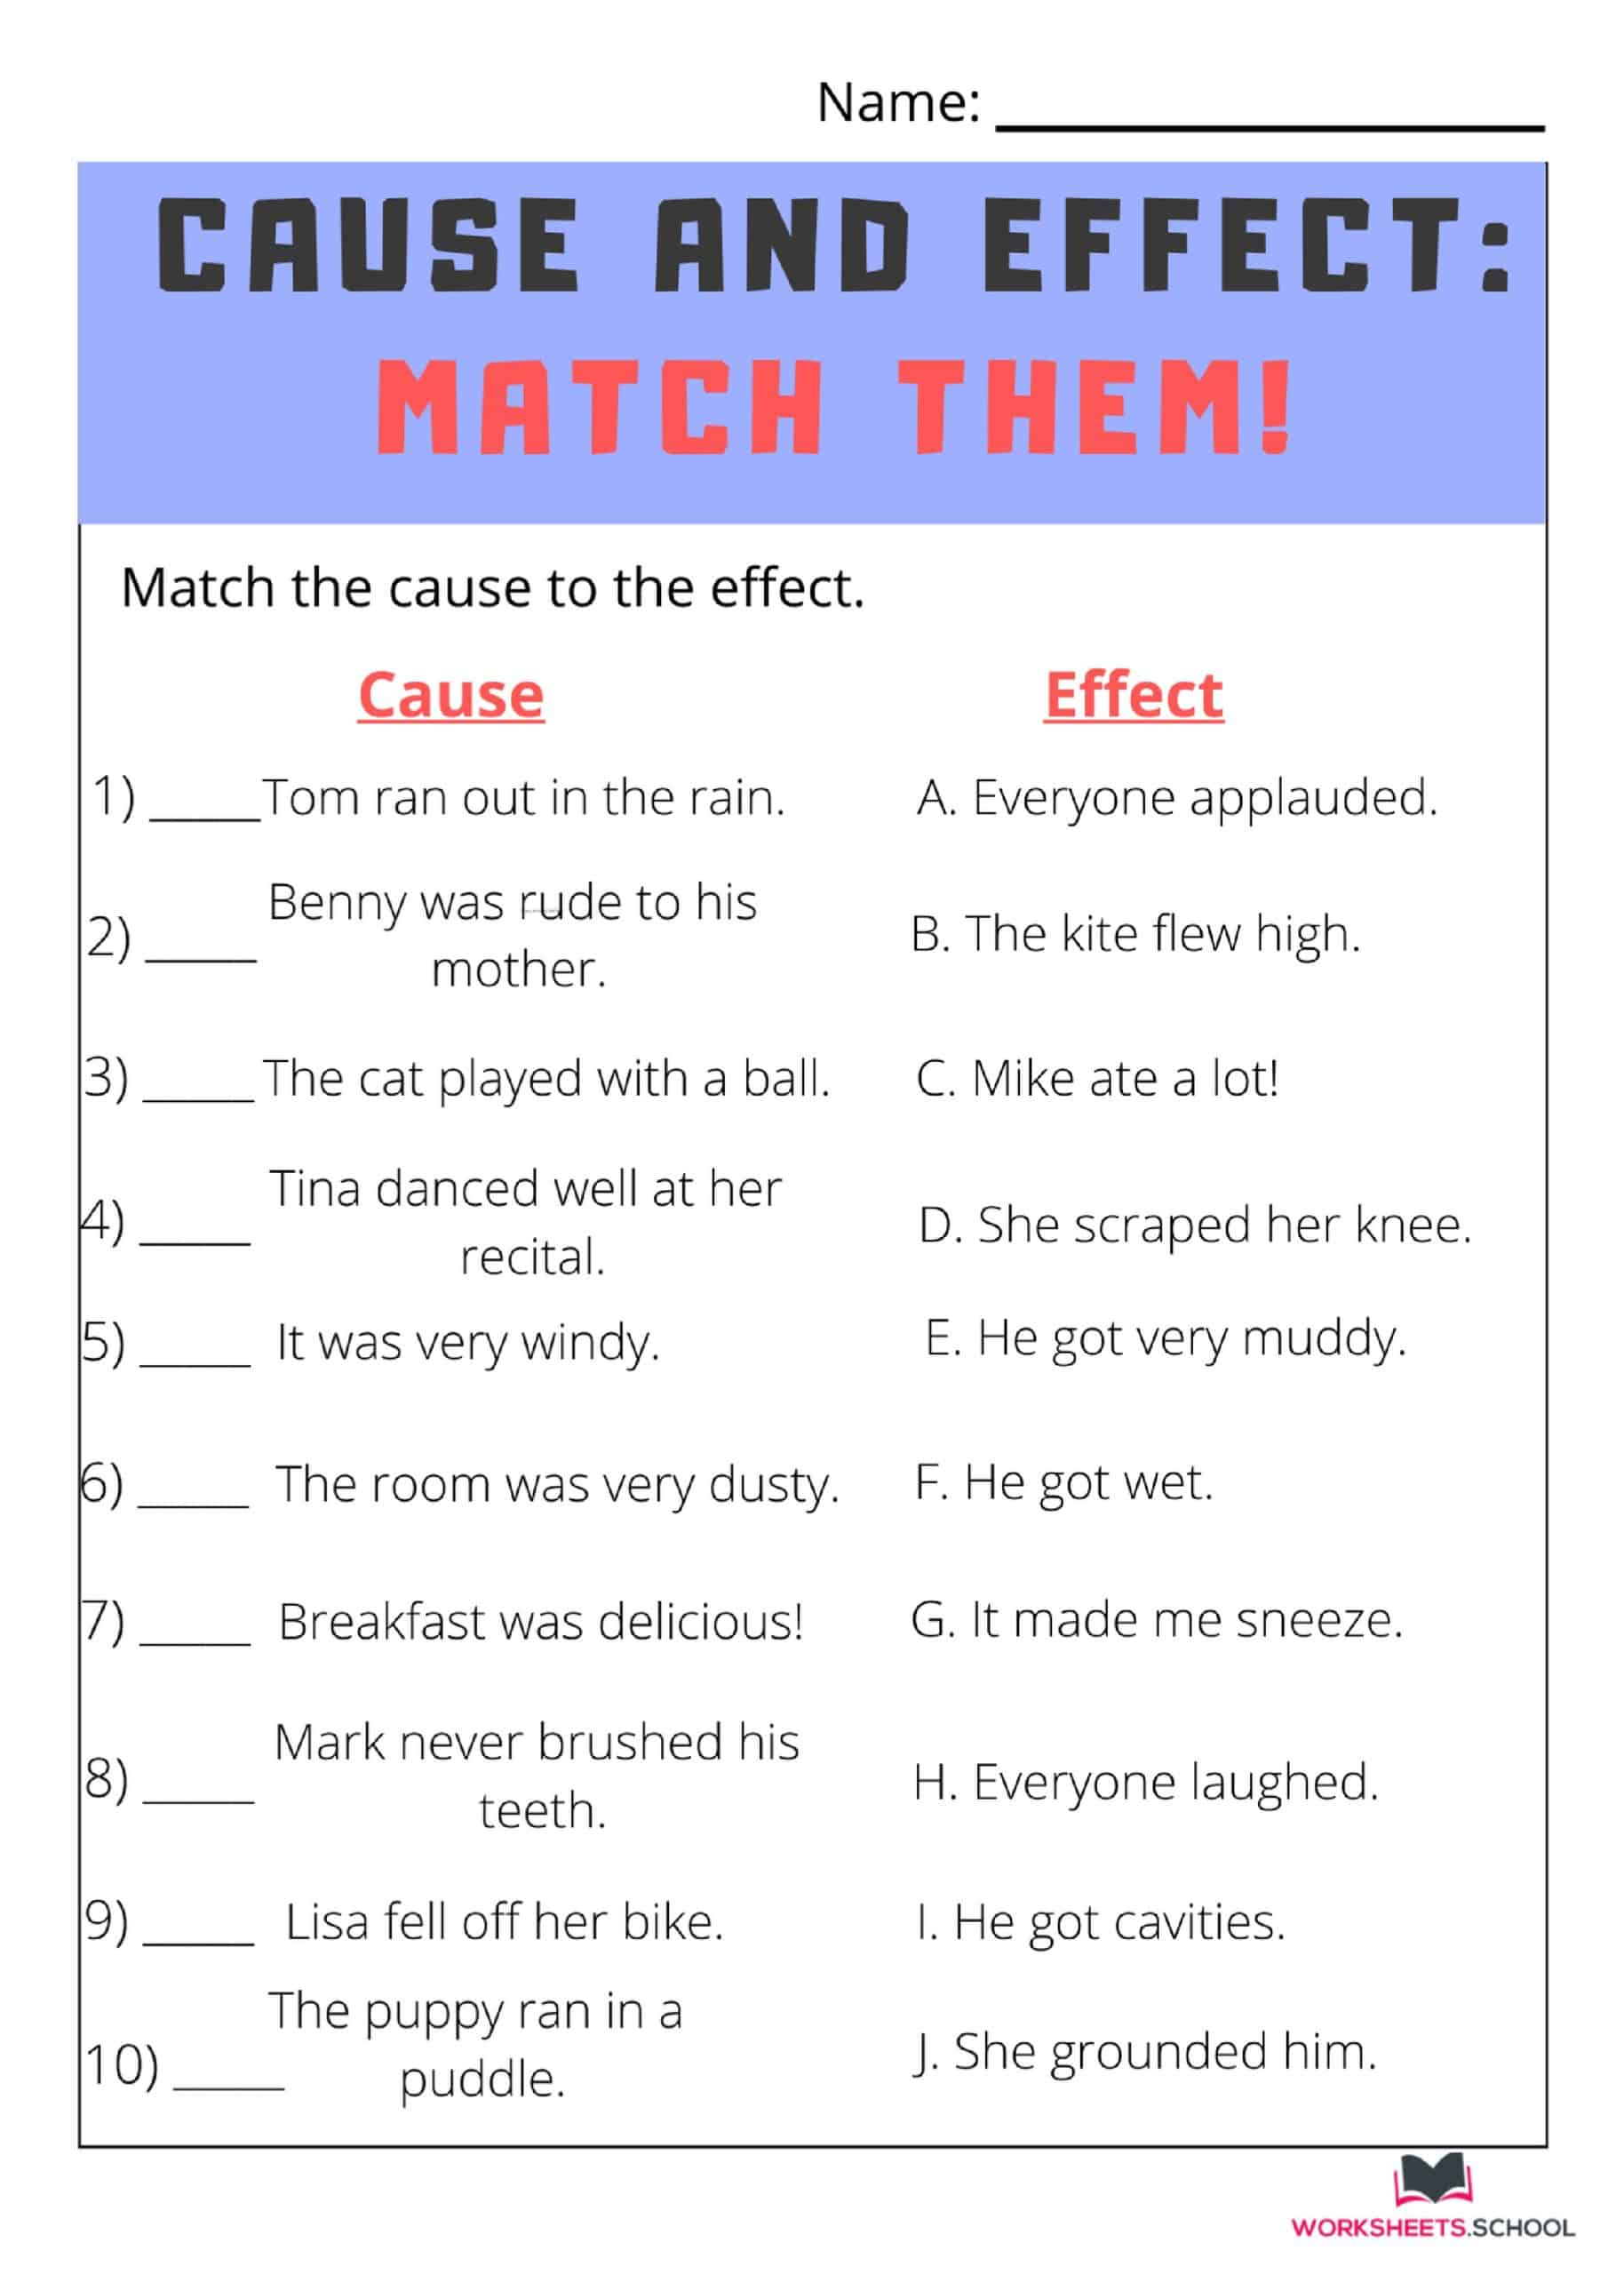 10 Free Cause And Effect Worksheets